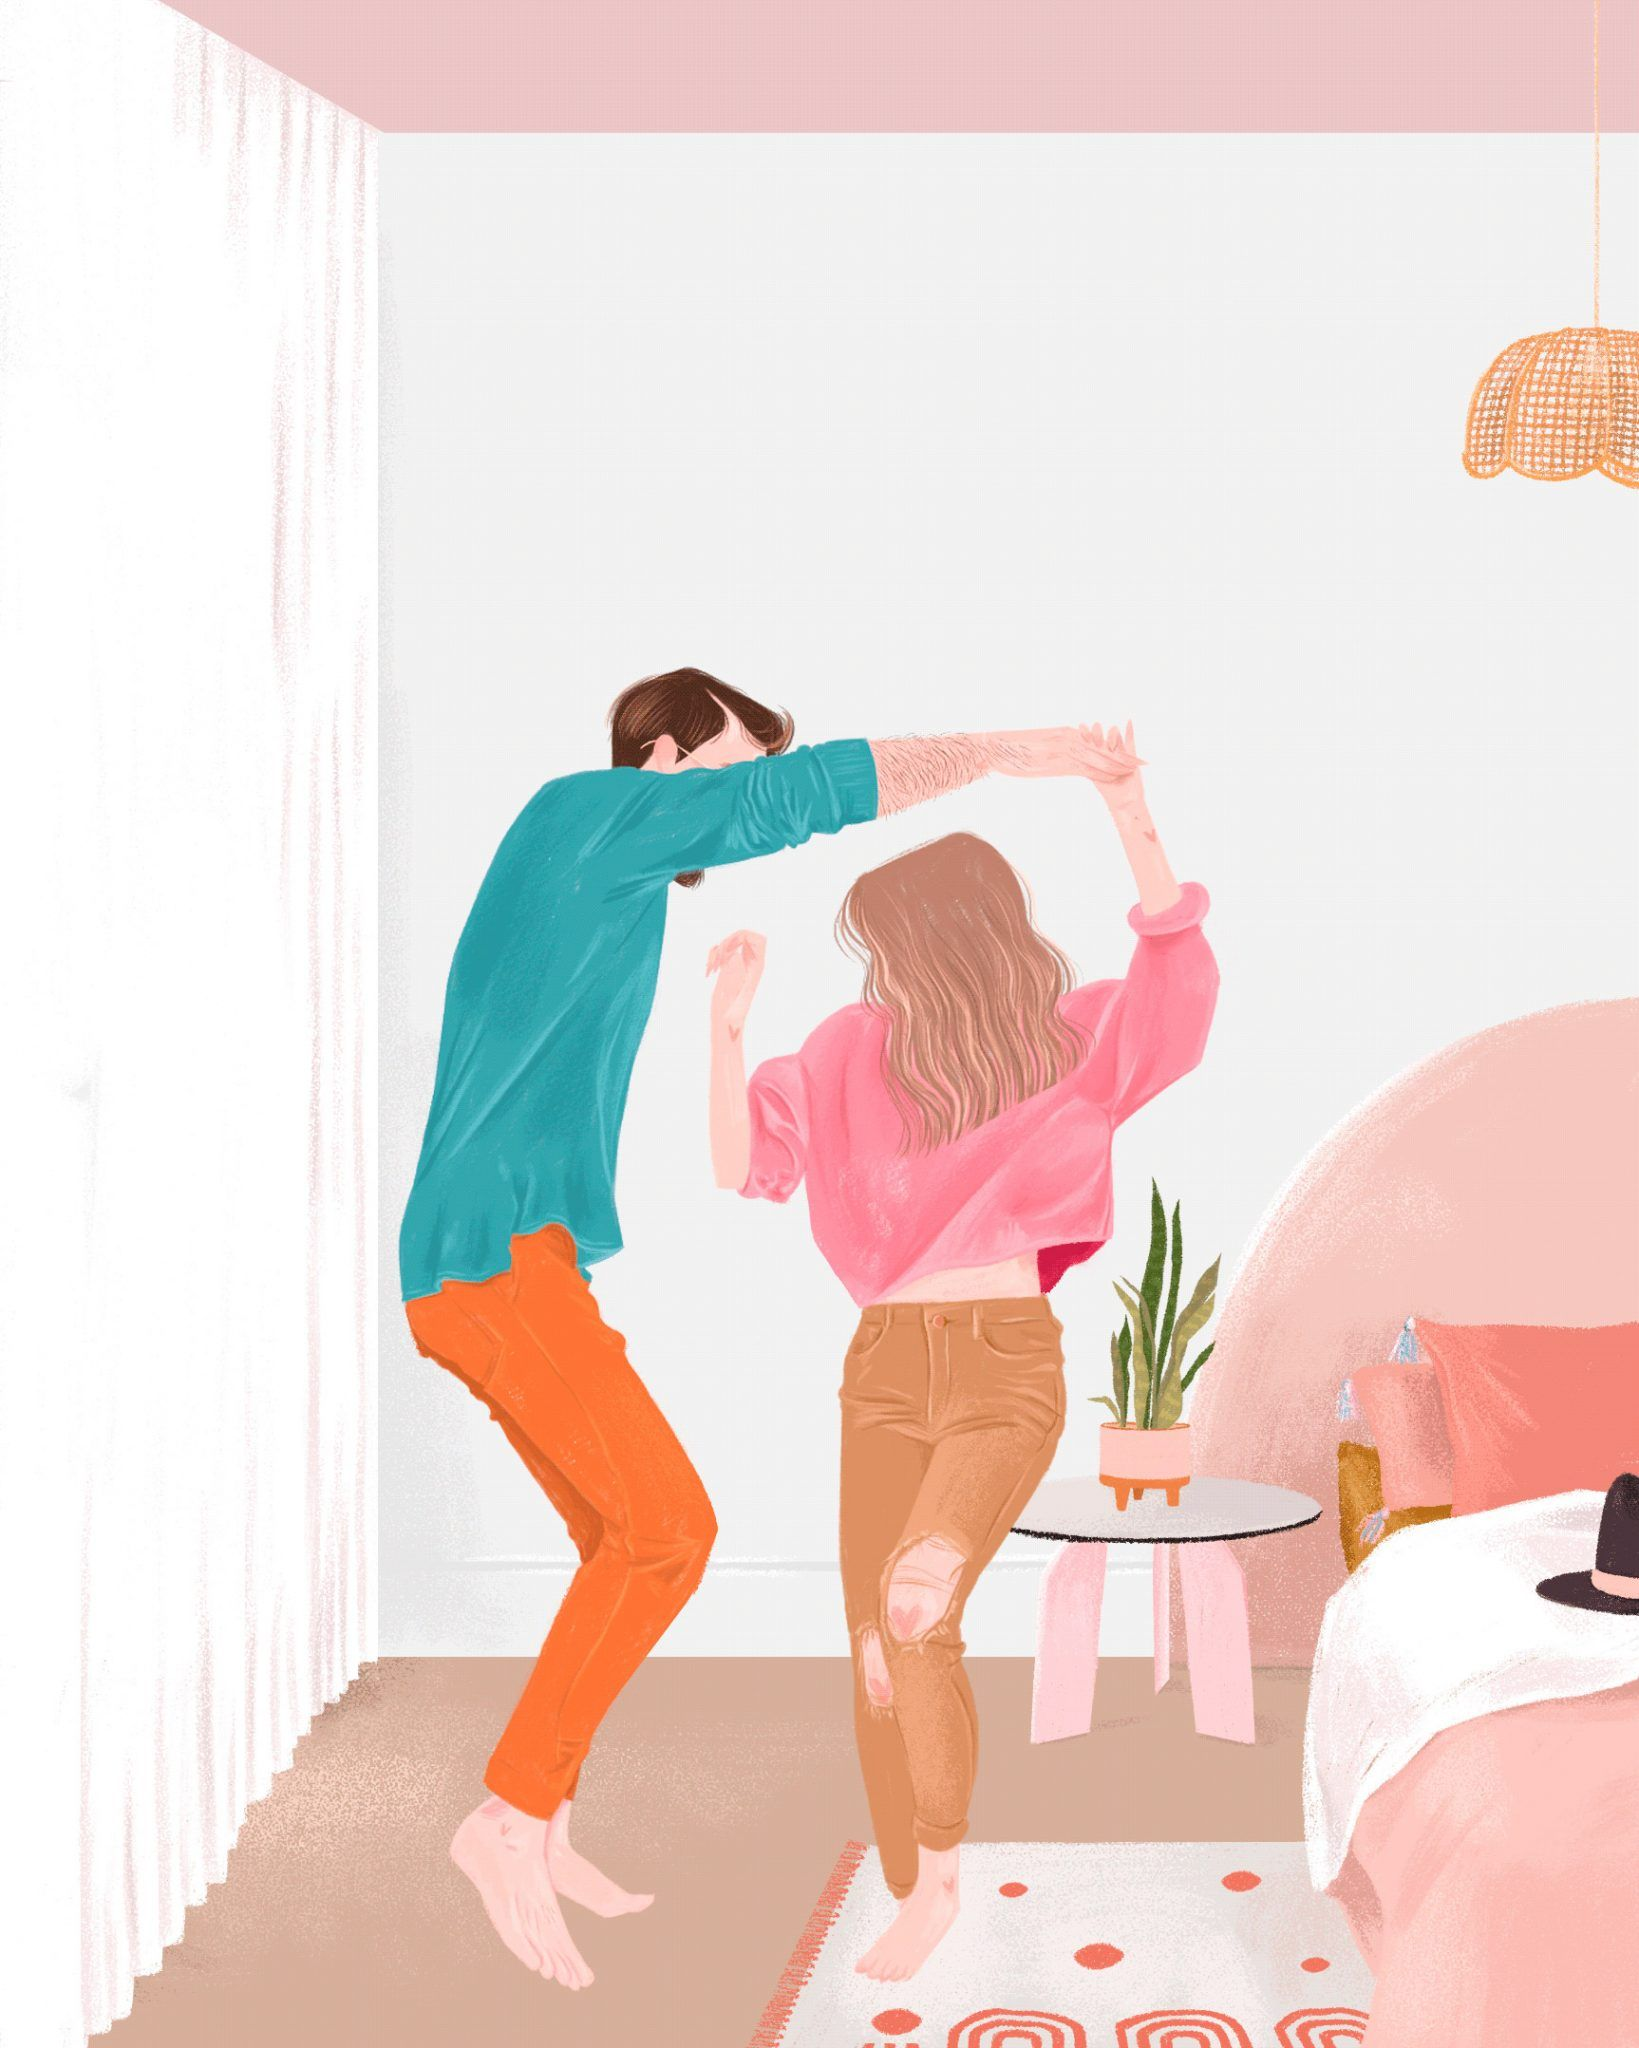 Beautiful Illustrations By Malena Flores Daily Design Inspiration For Creatives Inspiration Grid In 2020 Cute Couple Art Illustration Art Girl Pop Art Wallpaper